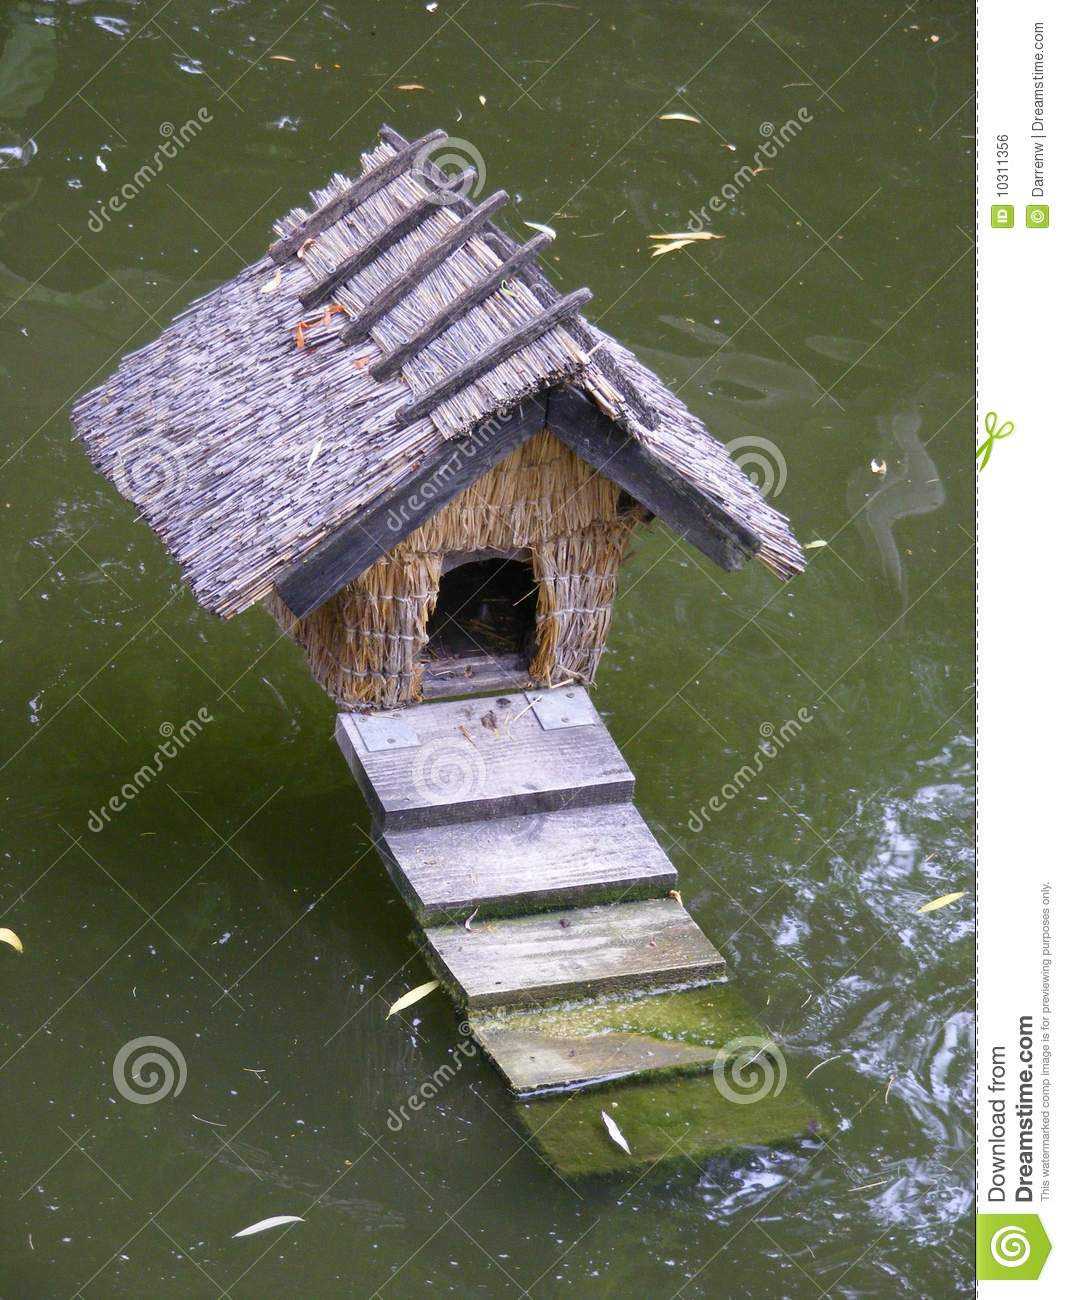 Duck house royalty free stock image image 10311356 for Building a duck house shelter